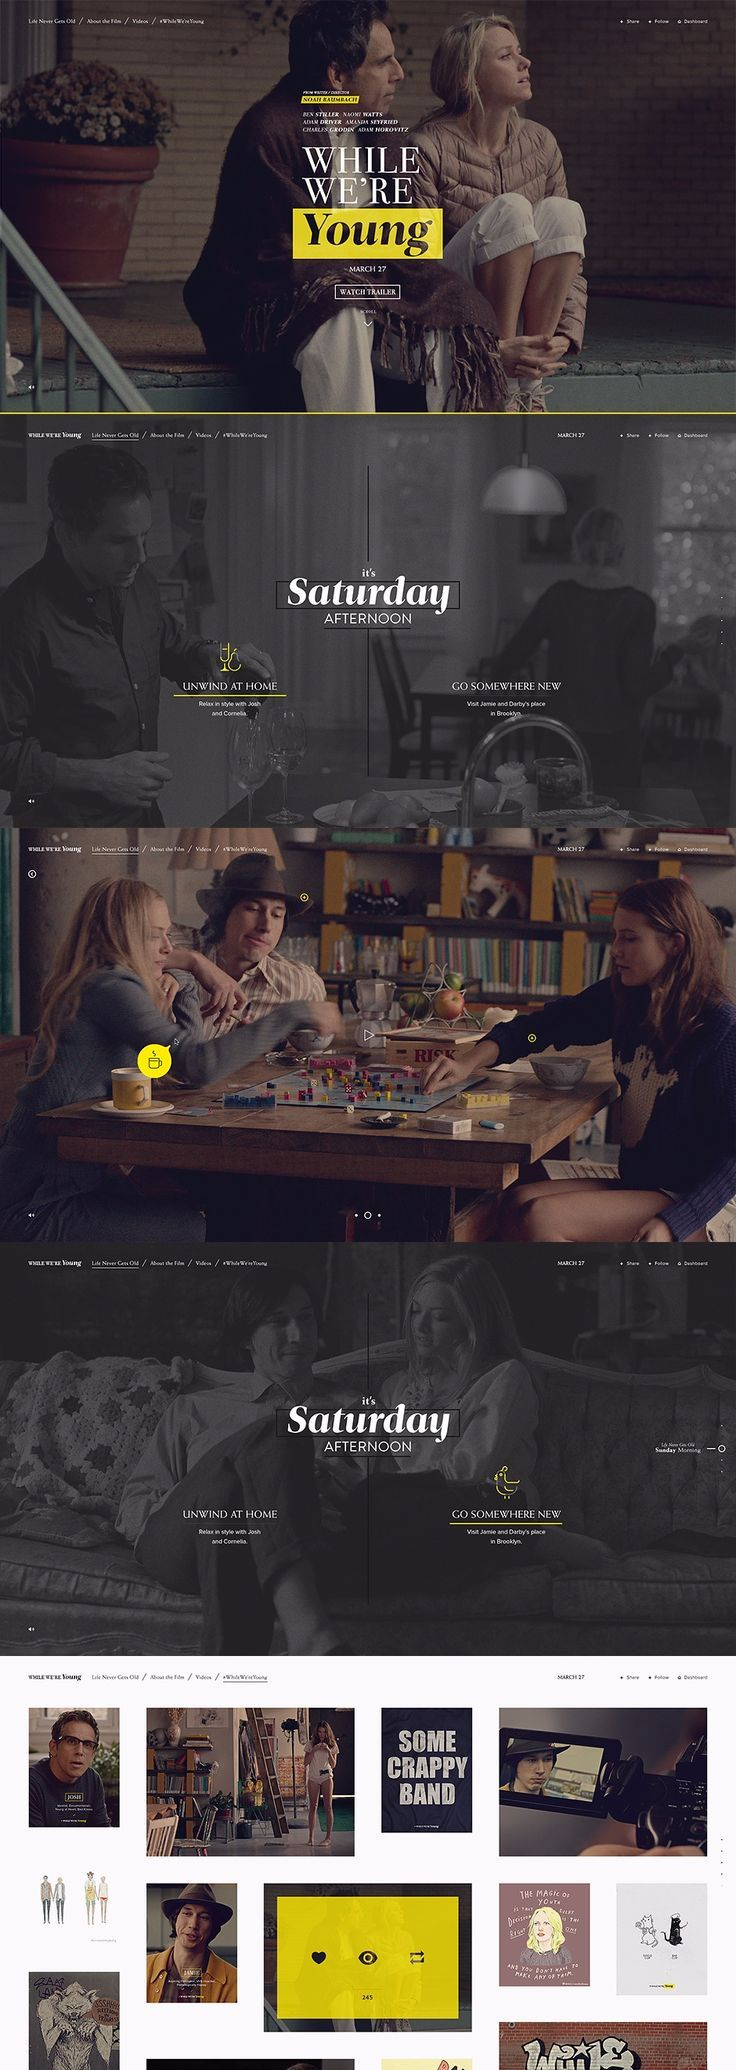 Social gallery is slick --> While We're Young by Watson